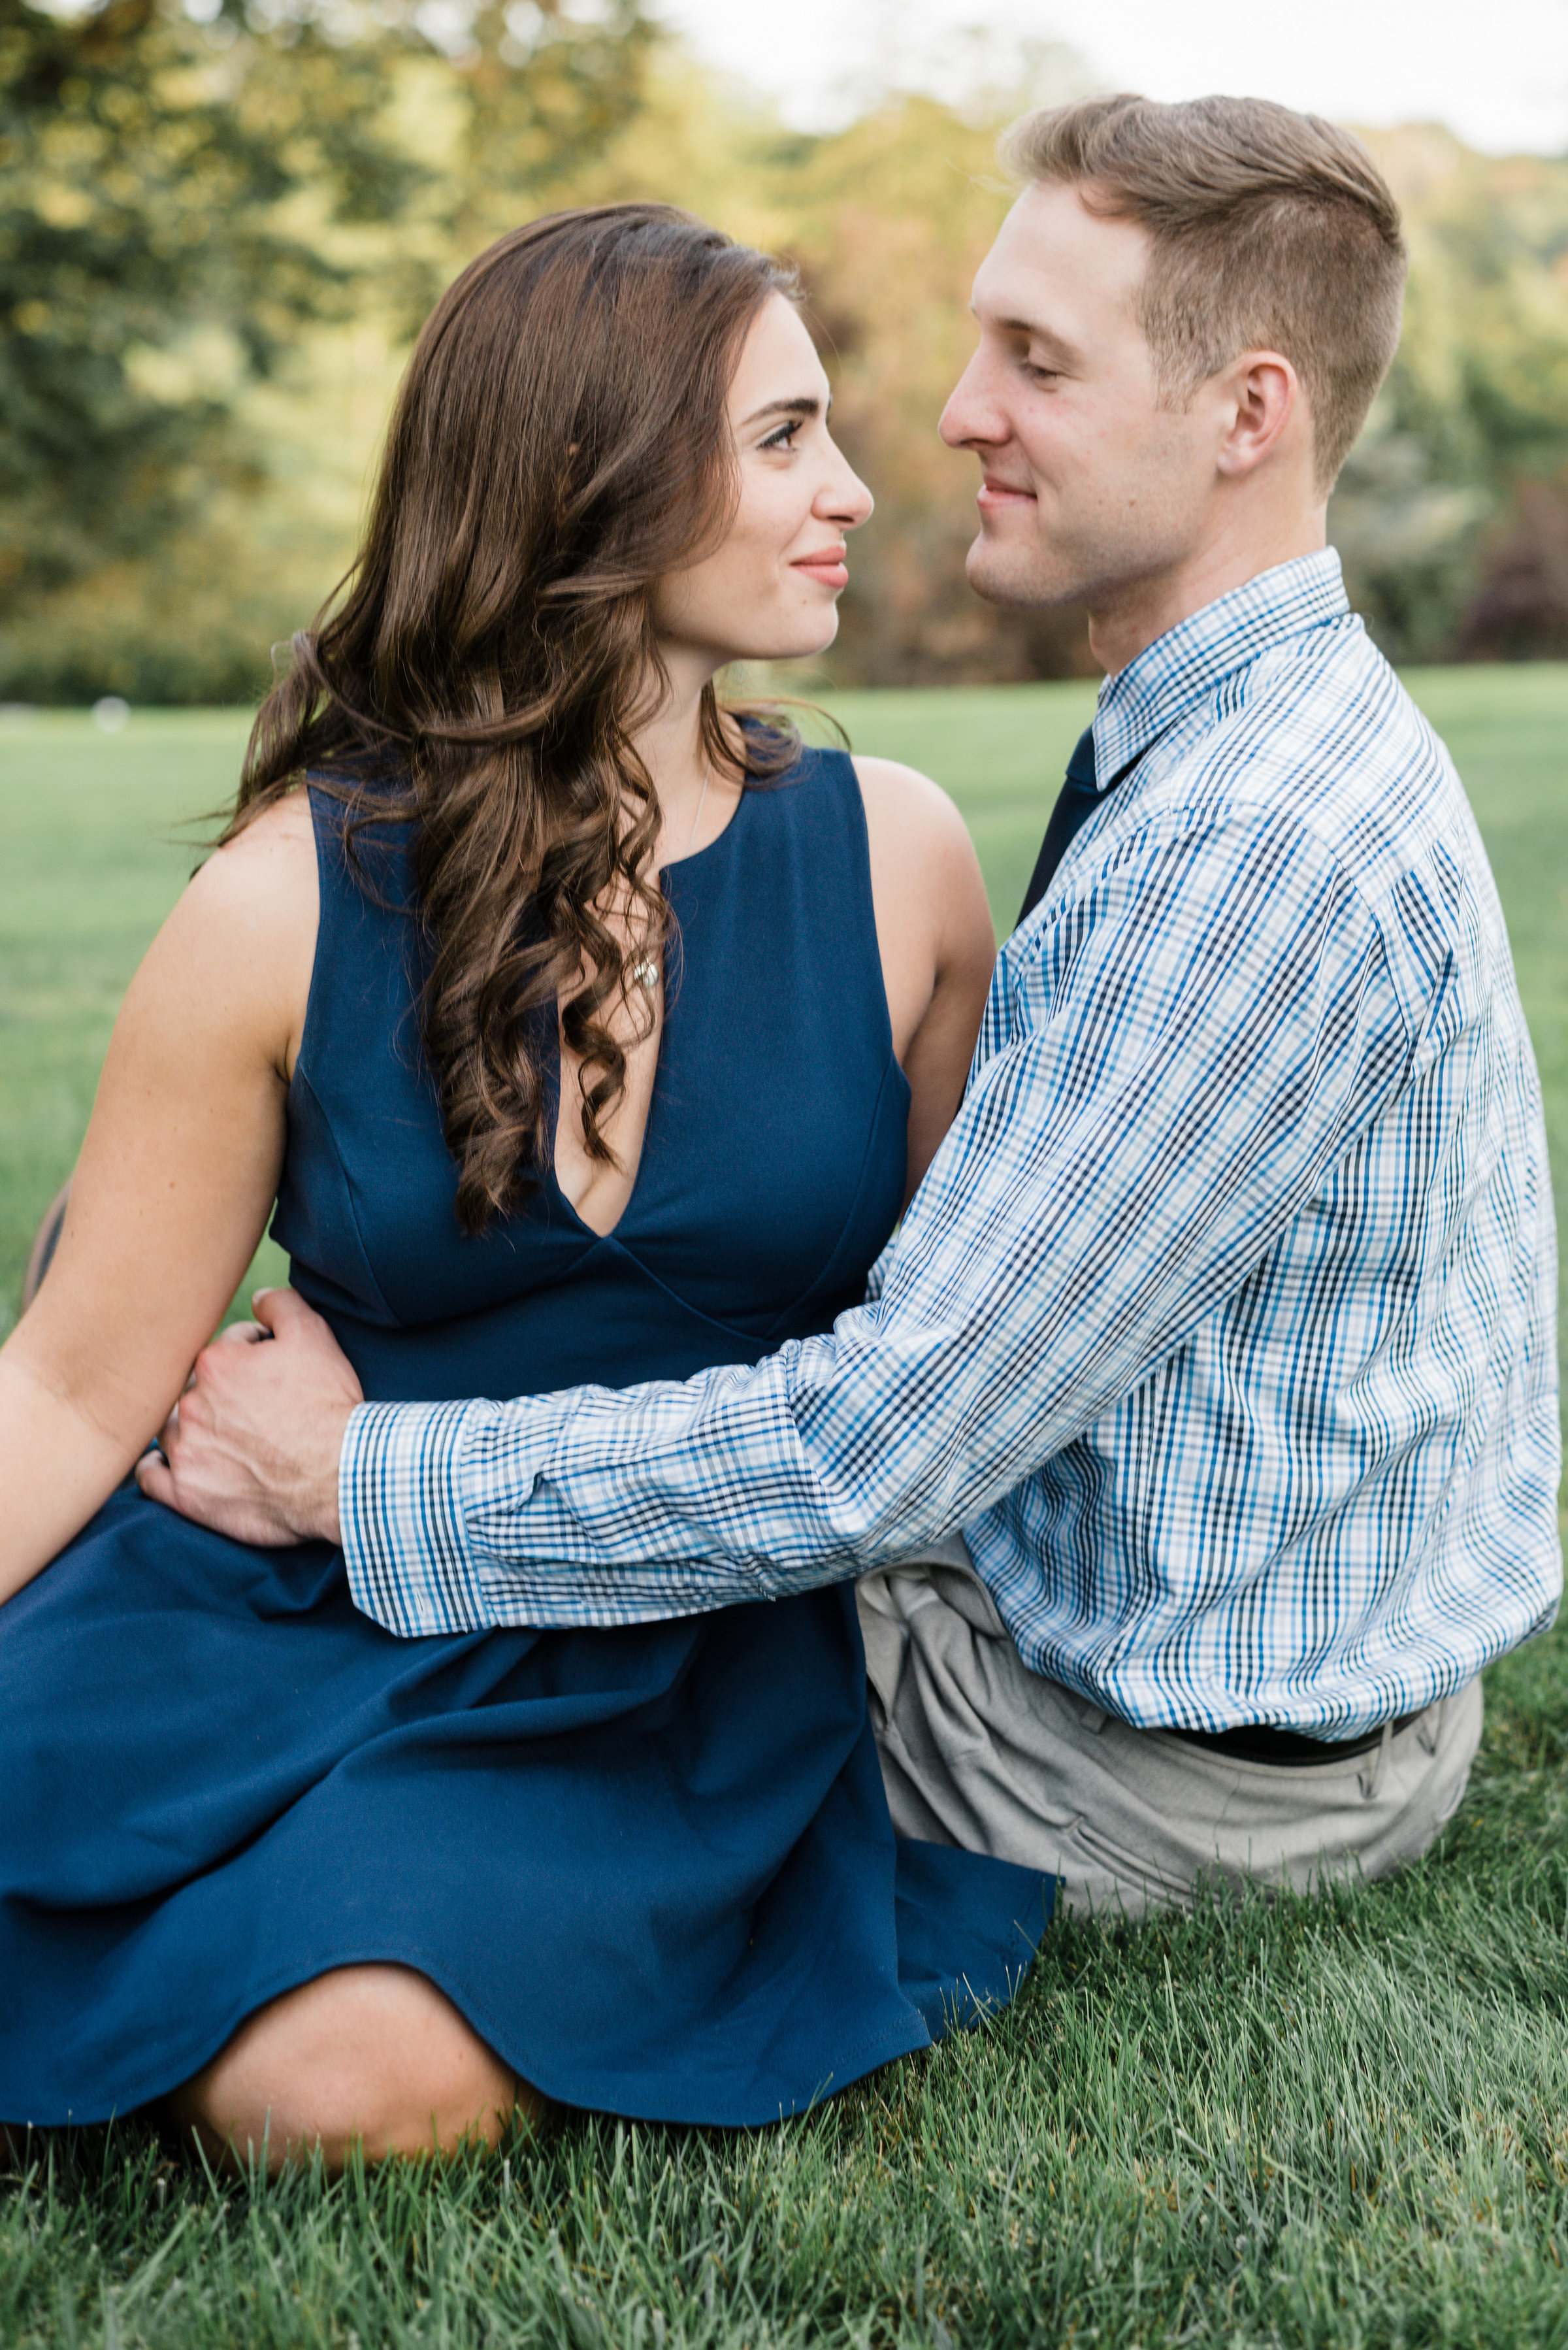 engagement pictures and ideas in westchester, connecticut, hudson valley, ny